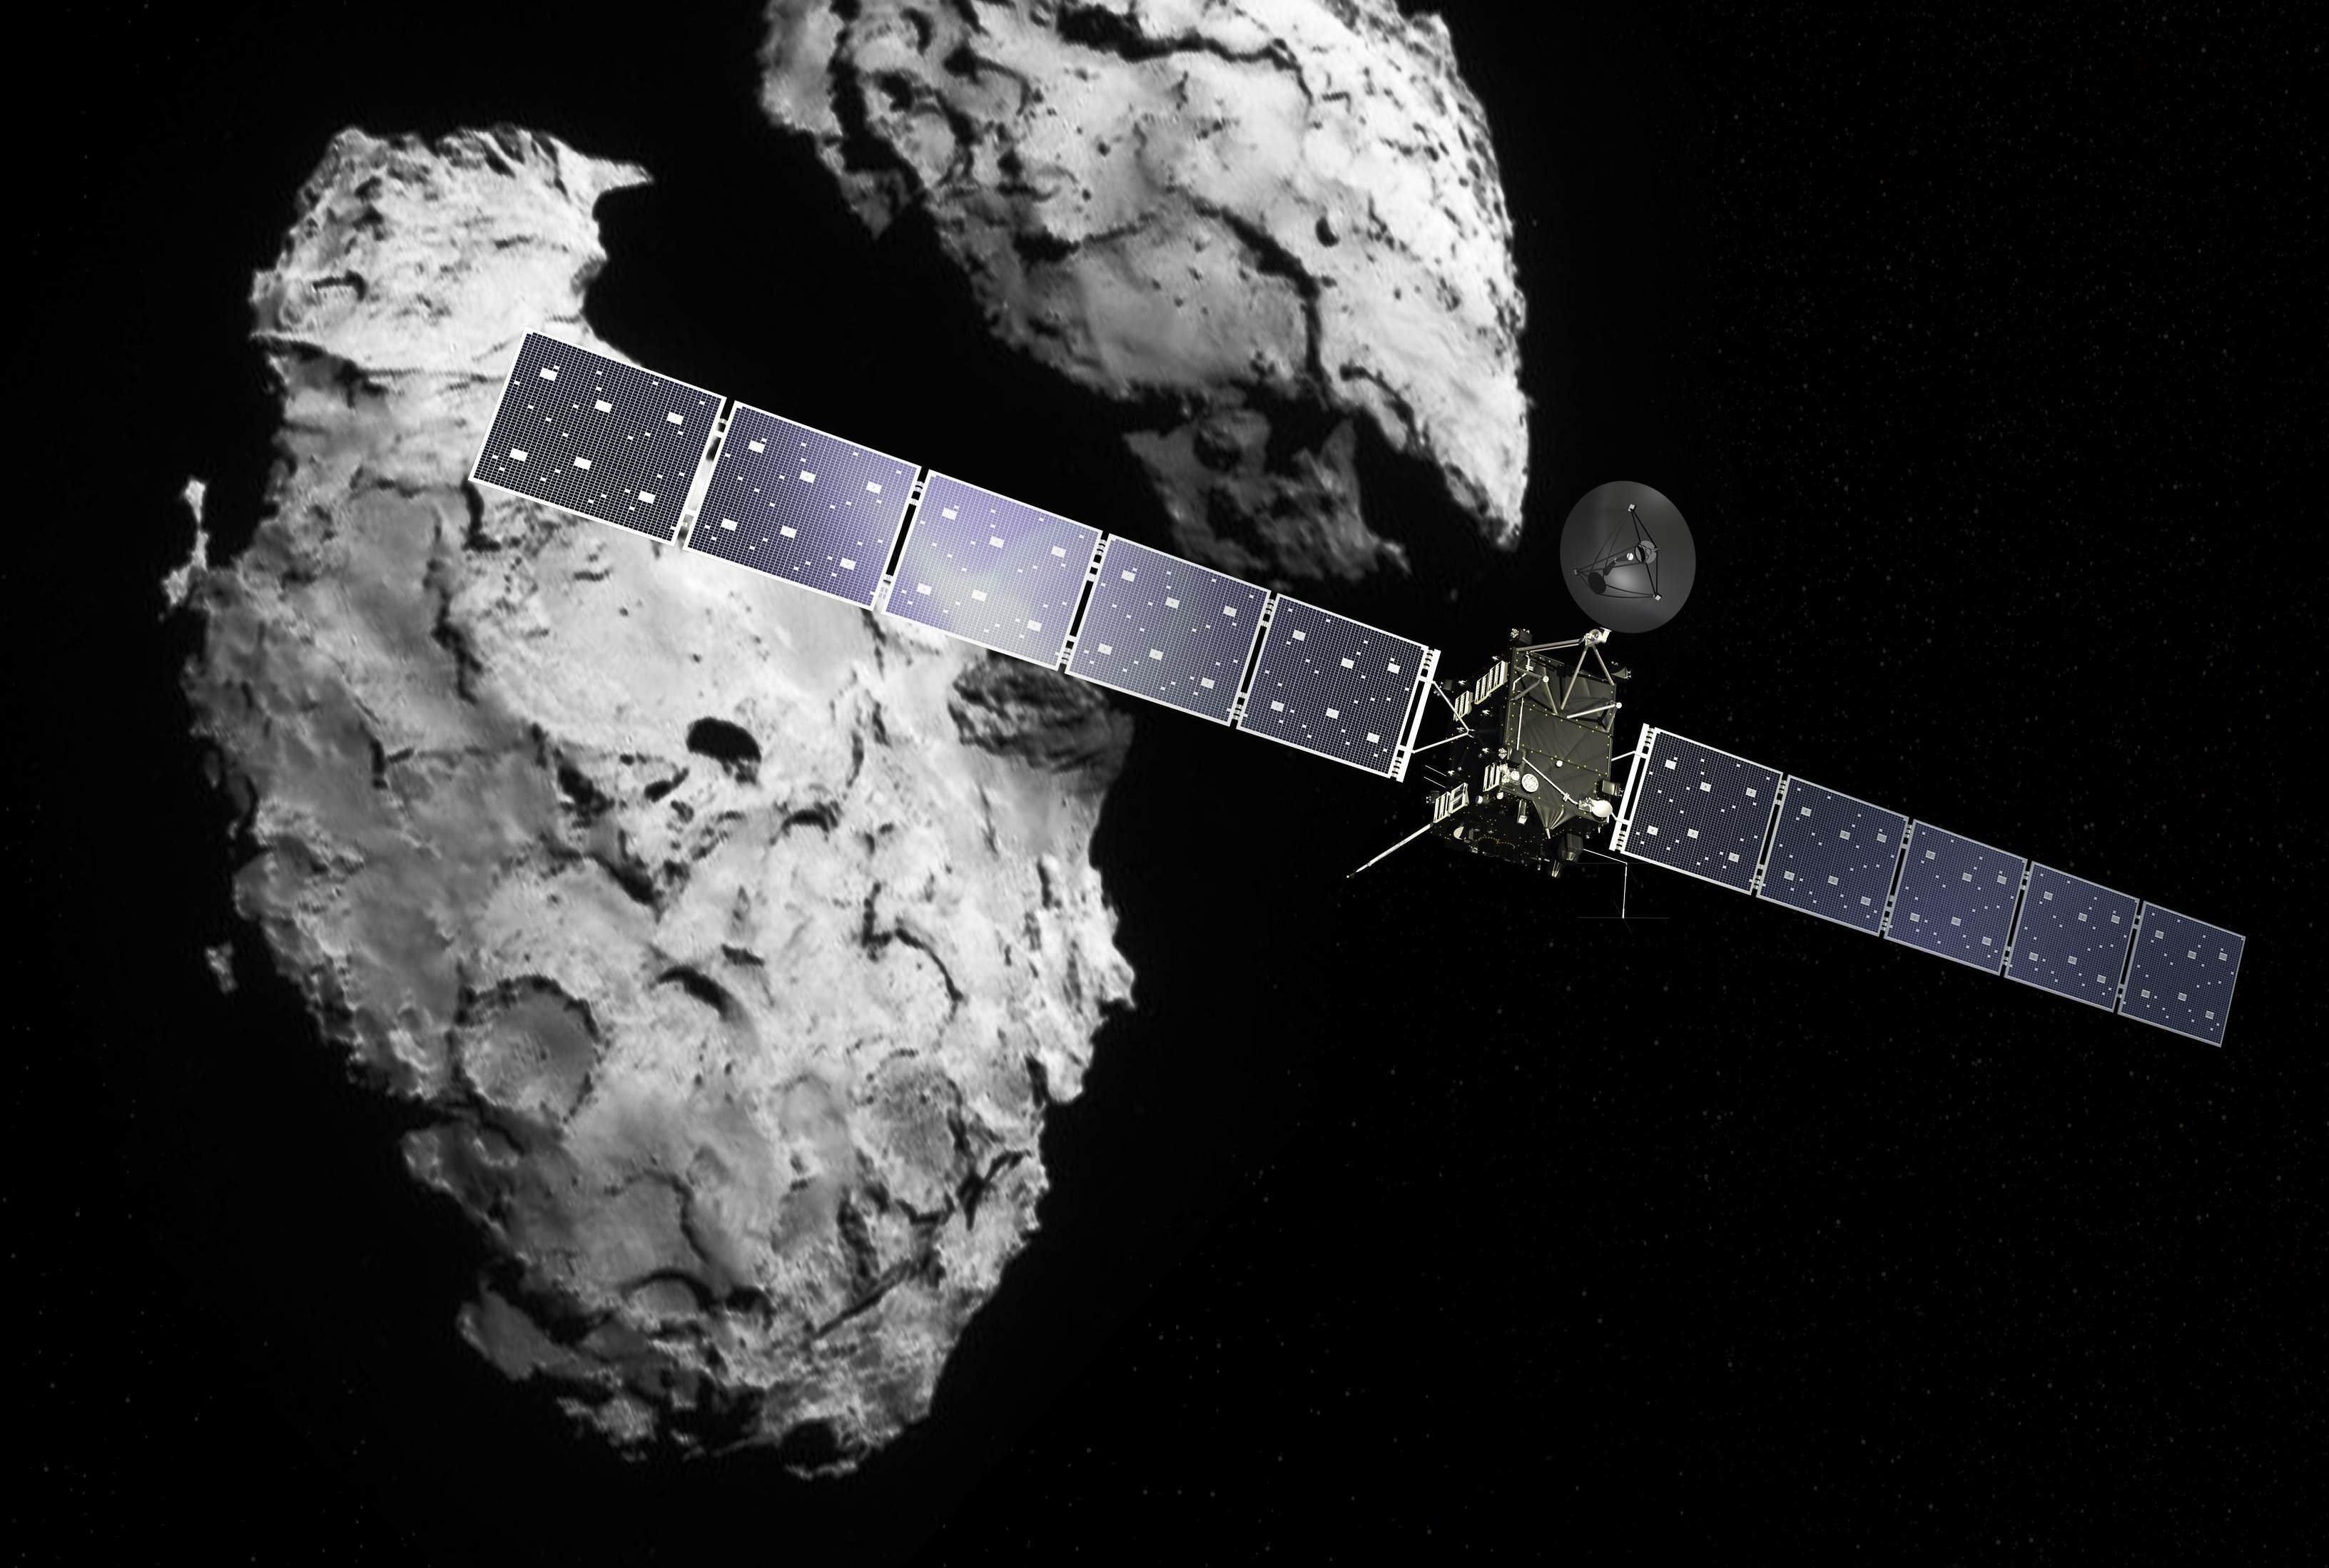 Rosetta and its target comet